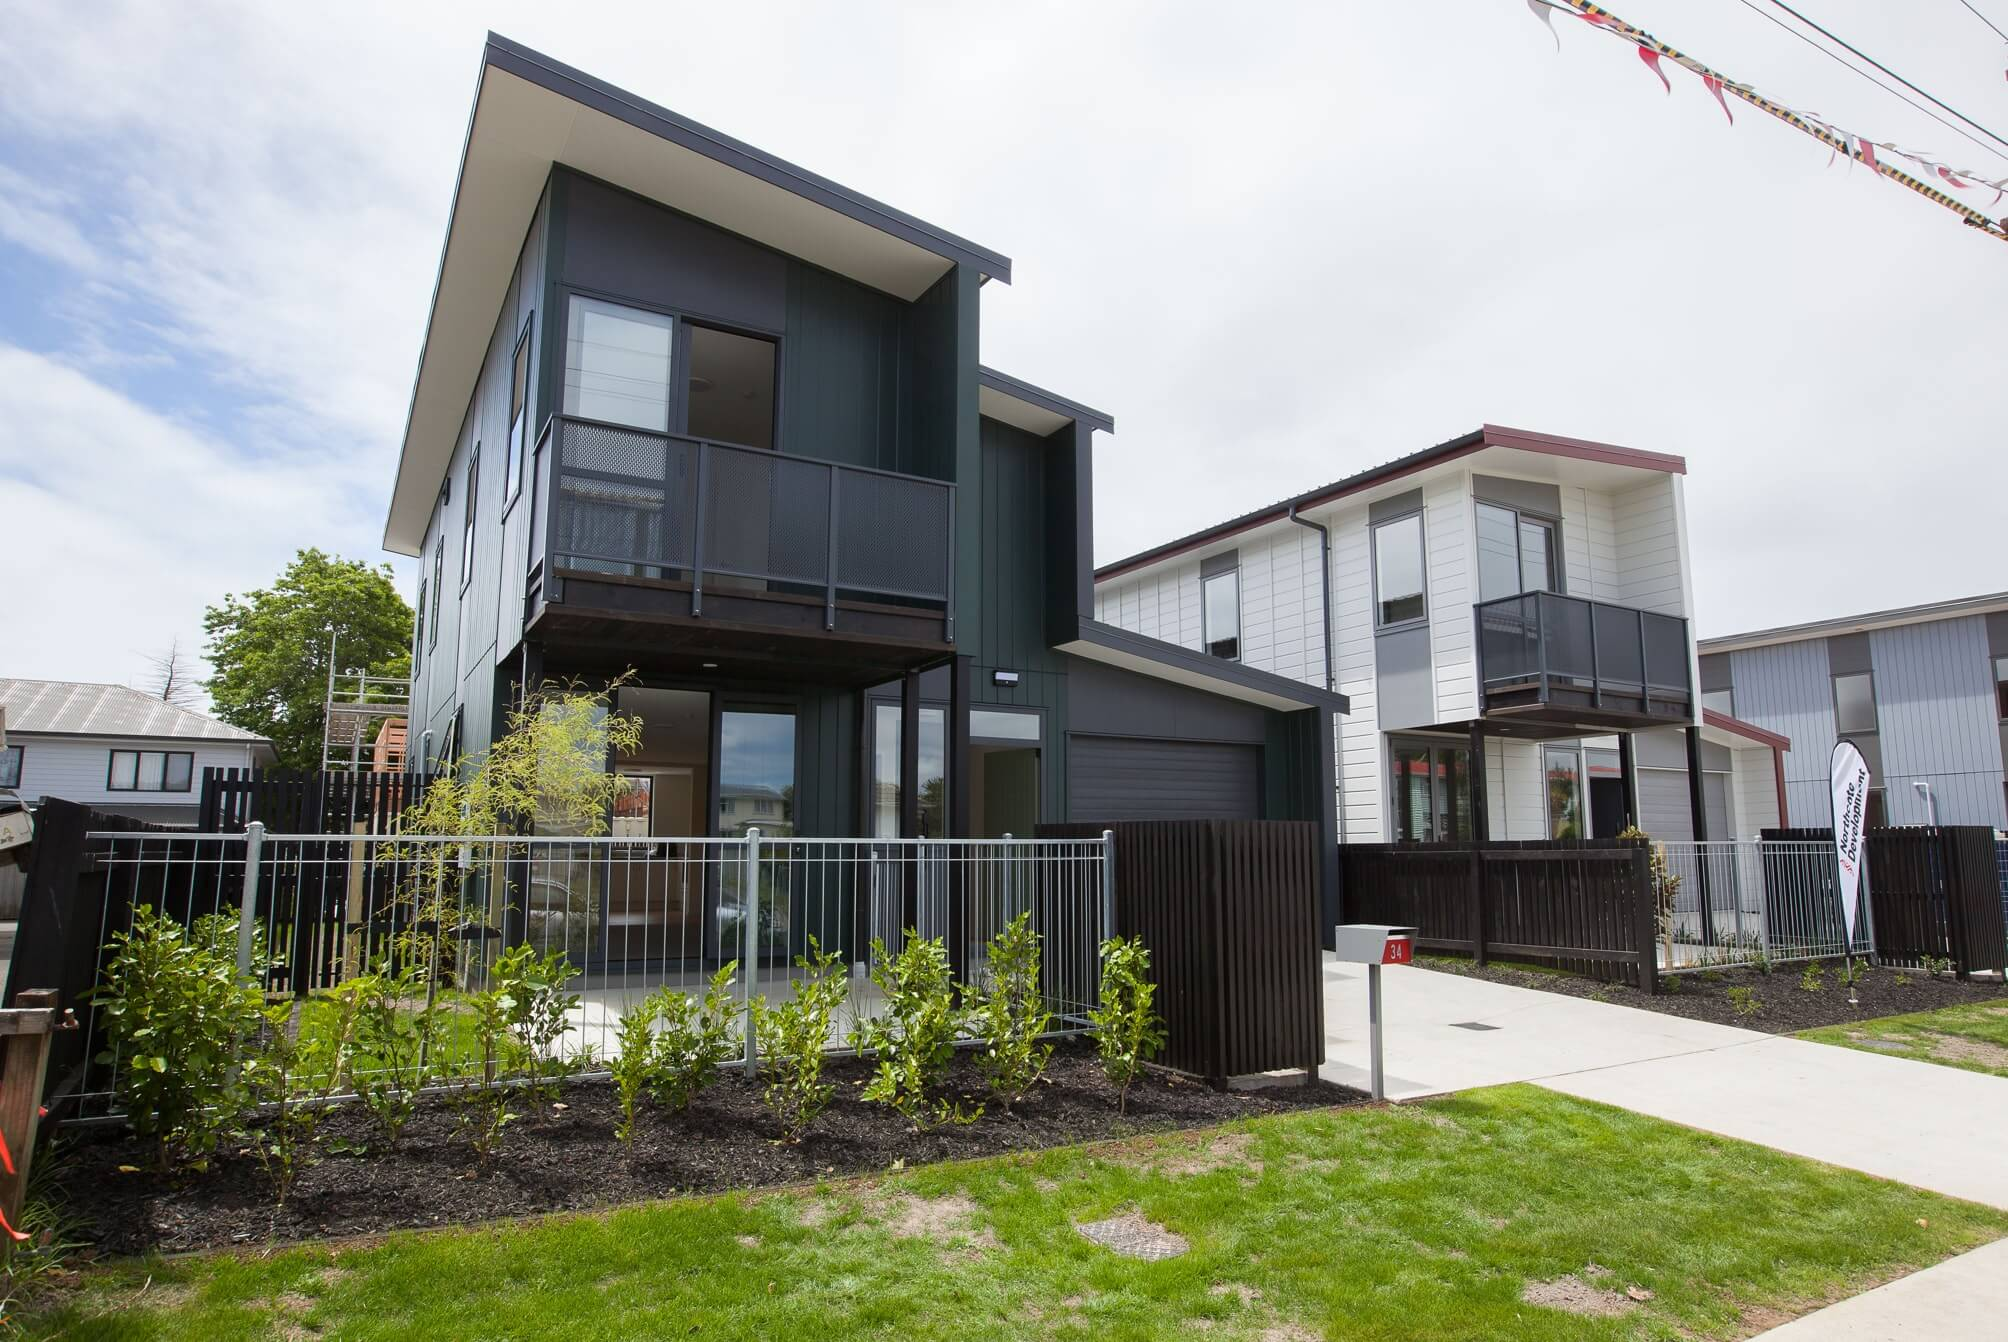 Our everyday homes in Northcote